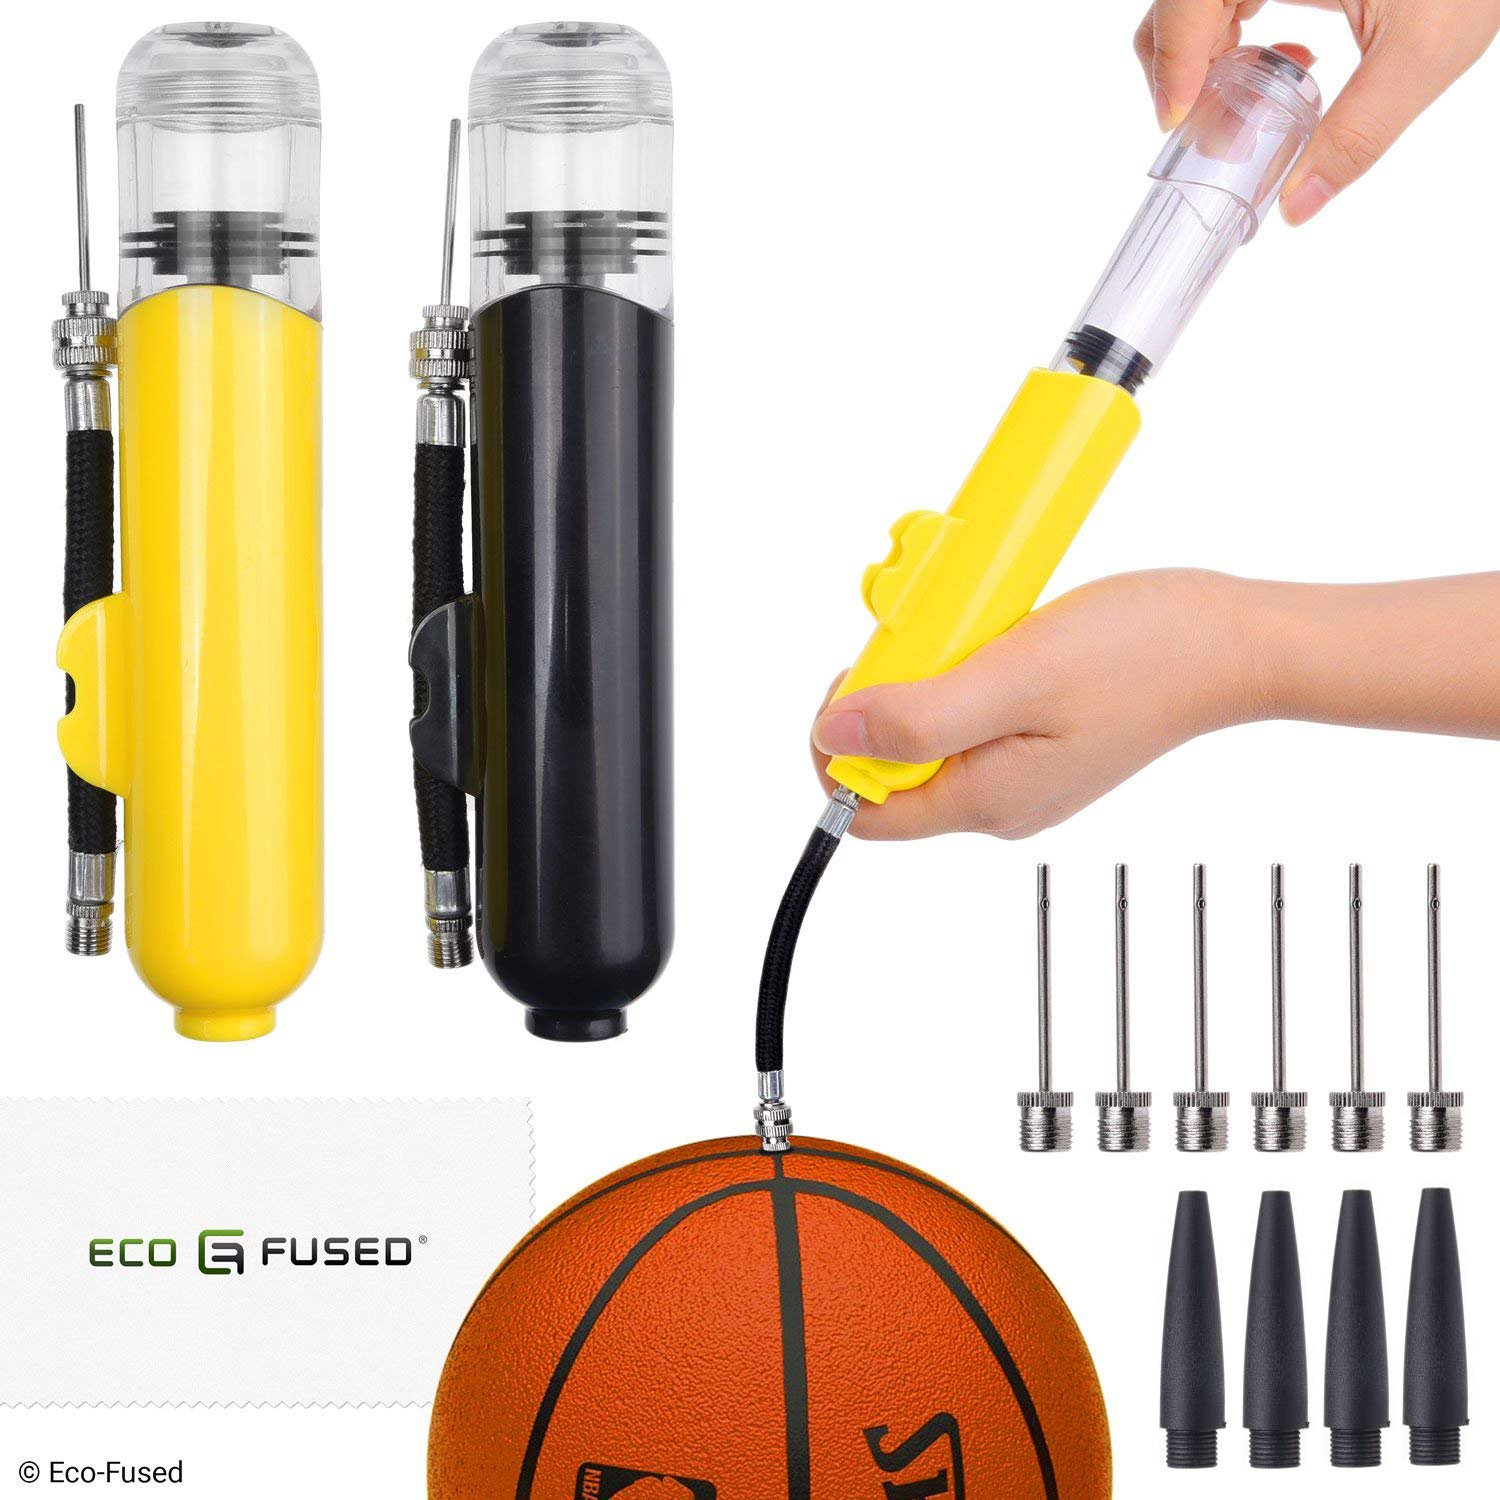 2x Ball Pump - Super Compact - Dual Action (Pumps Air when you Push and Pull) - For Sport Balls (Basketball, Soccer, Football, Rugby, Volleyball, Yoga, etc.) and Inflatables (Beach Balls, Pool Floats)